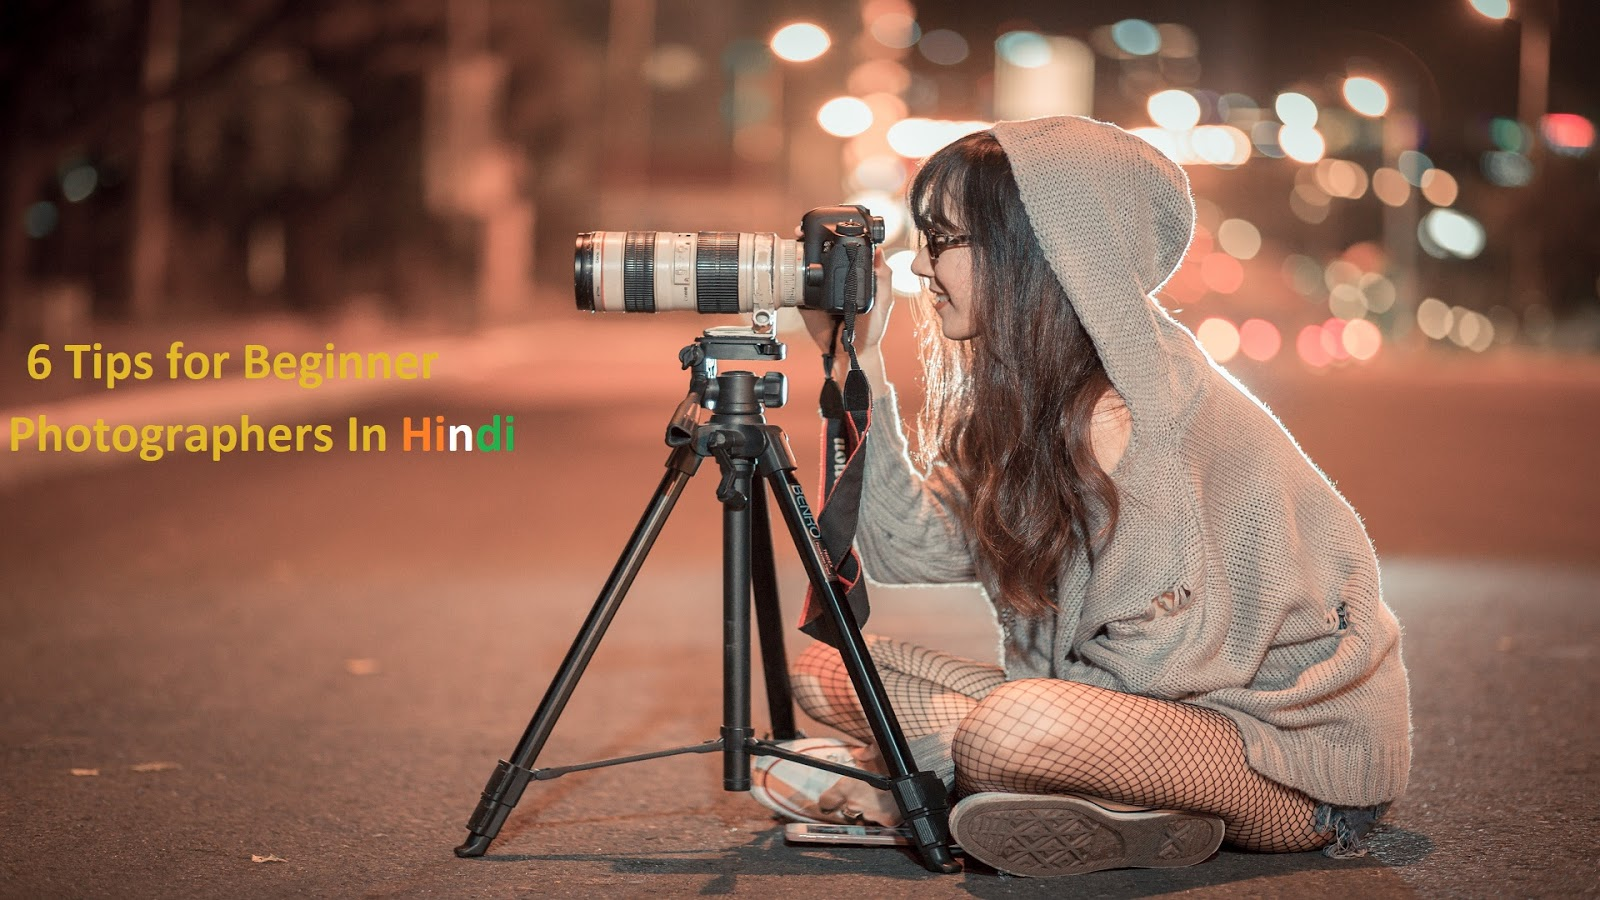 6 Tips For Beginner Photographers In Hindi